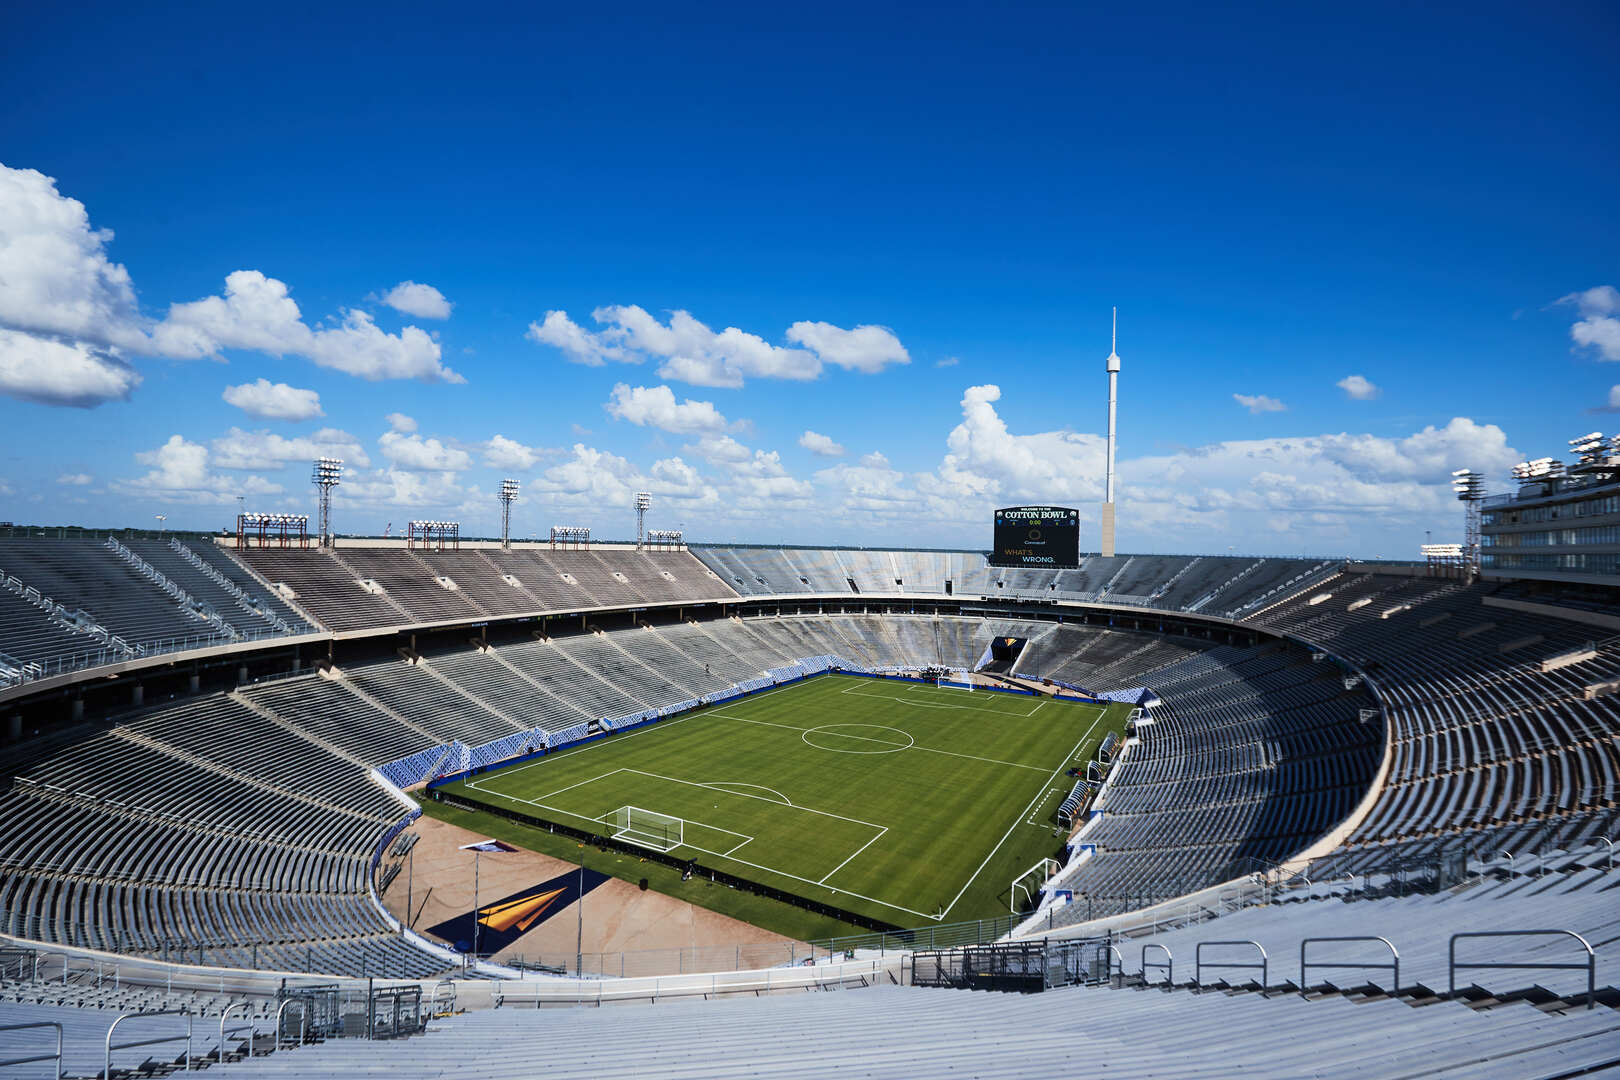 Capacity crowd expected for Mexico vs El Salvador Gold Cup Match at Cotton Bowl Today, July 18